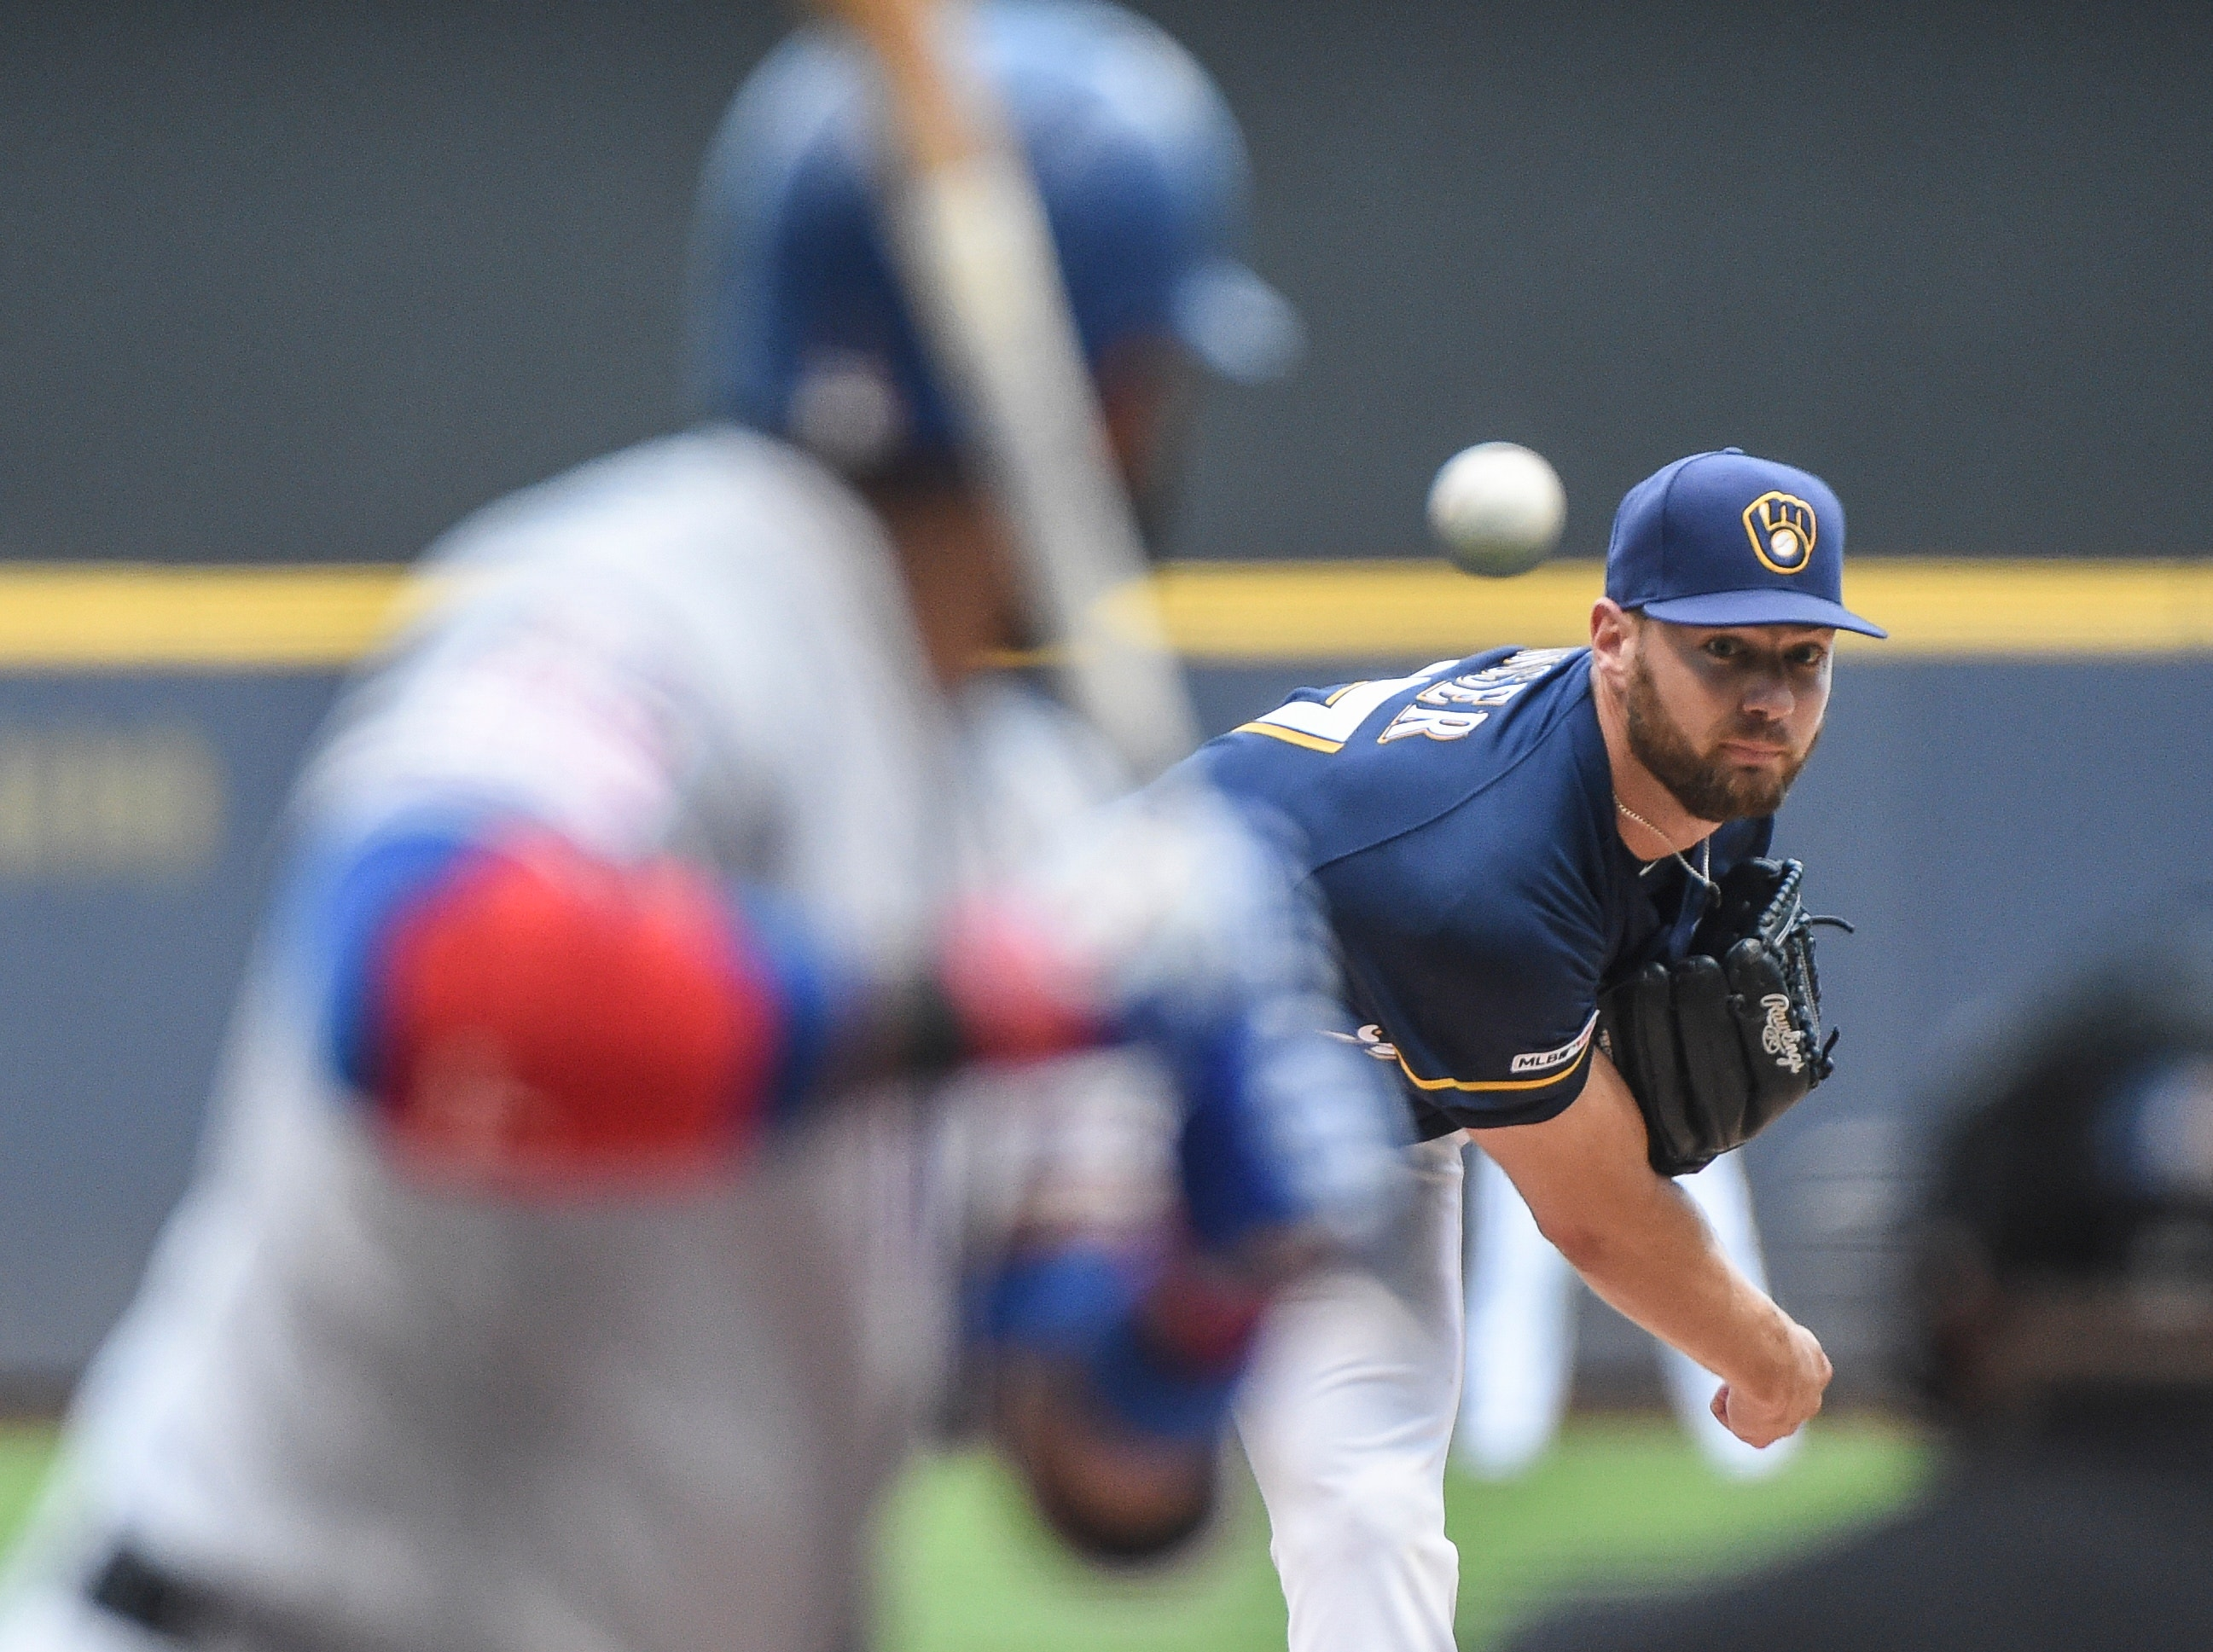 Houser strikes out 10, Brewers beat Rangers 3-2 for 5th straight